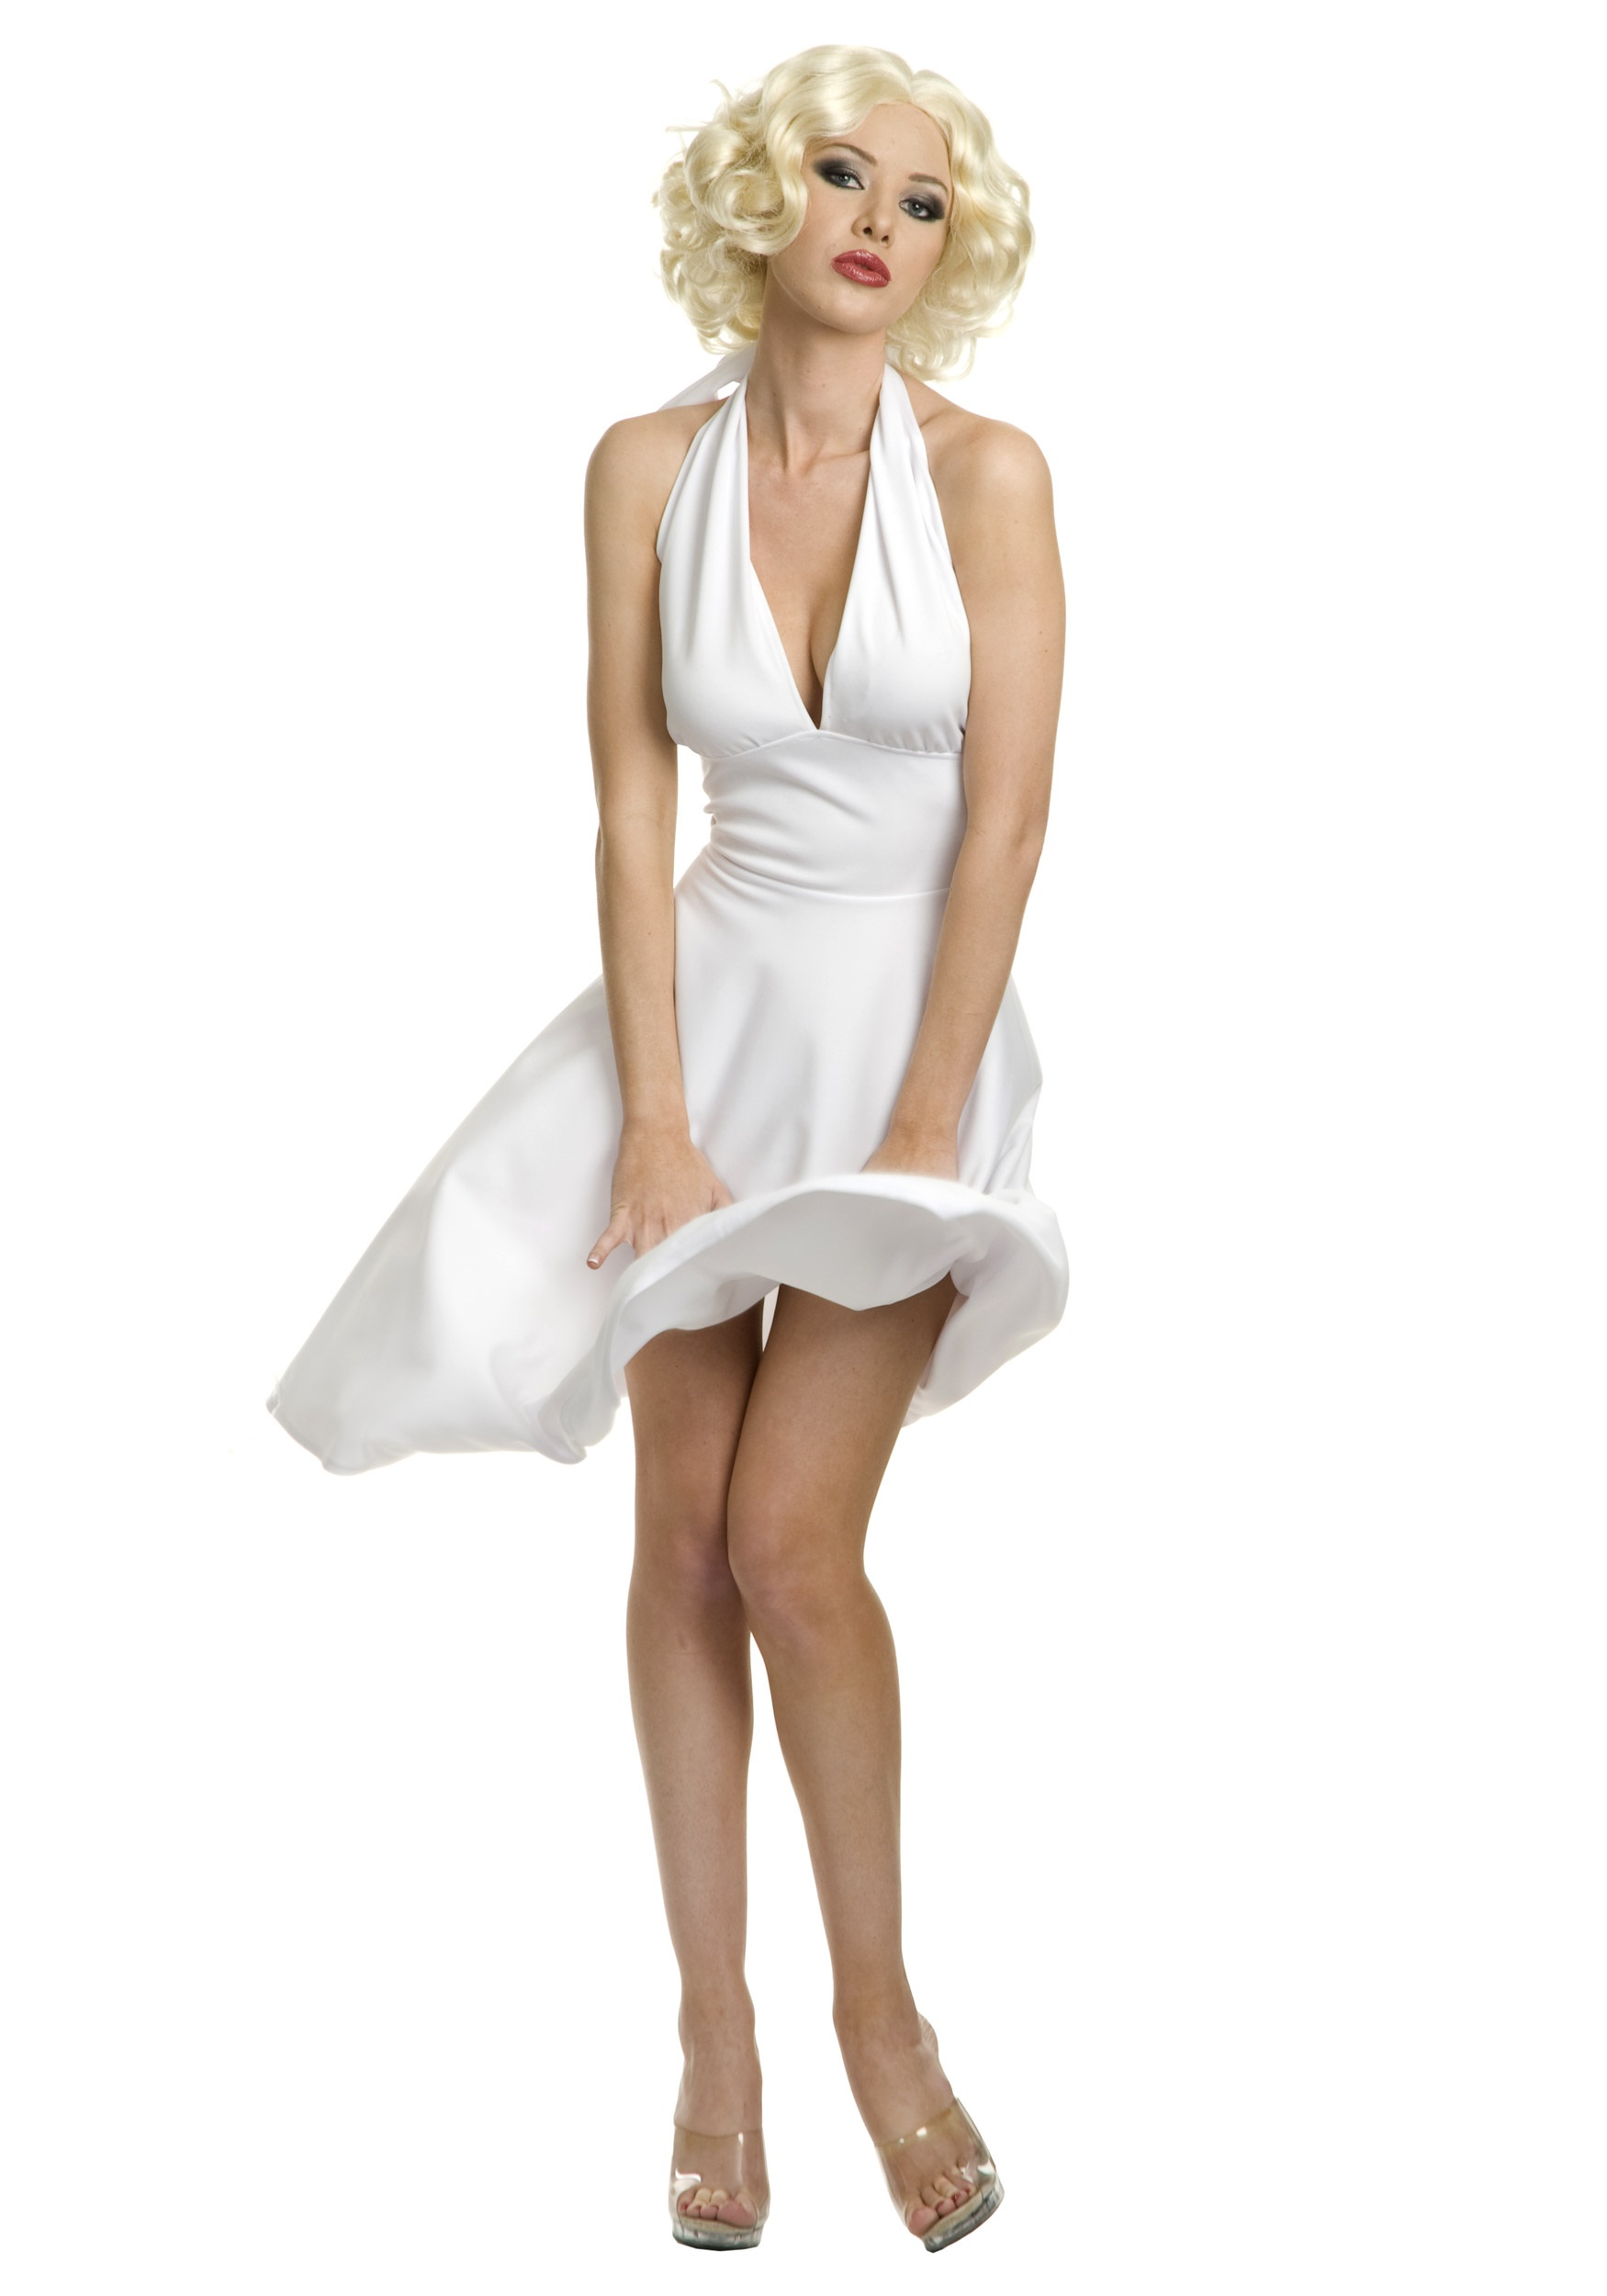 Plus Size Hollywood Marilyn Dress - Womens Marilyn Monroe Costumes